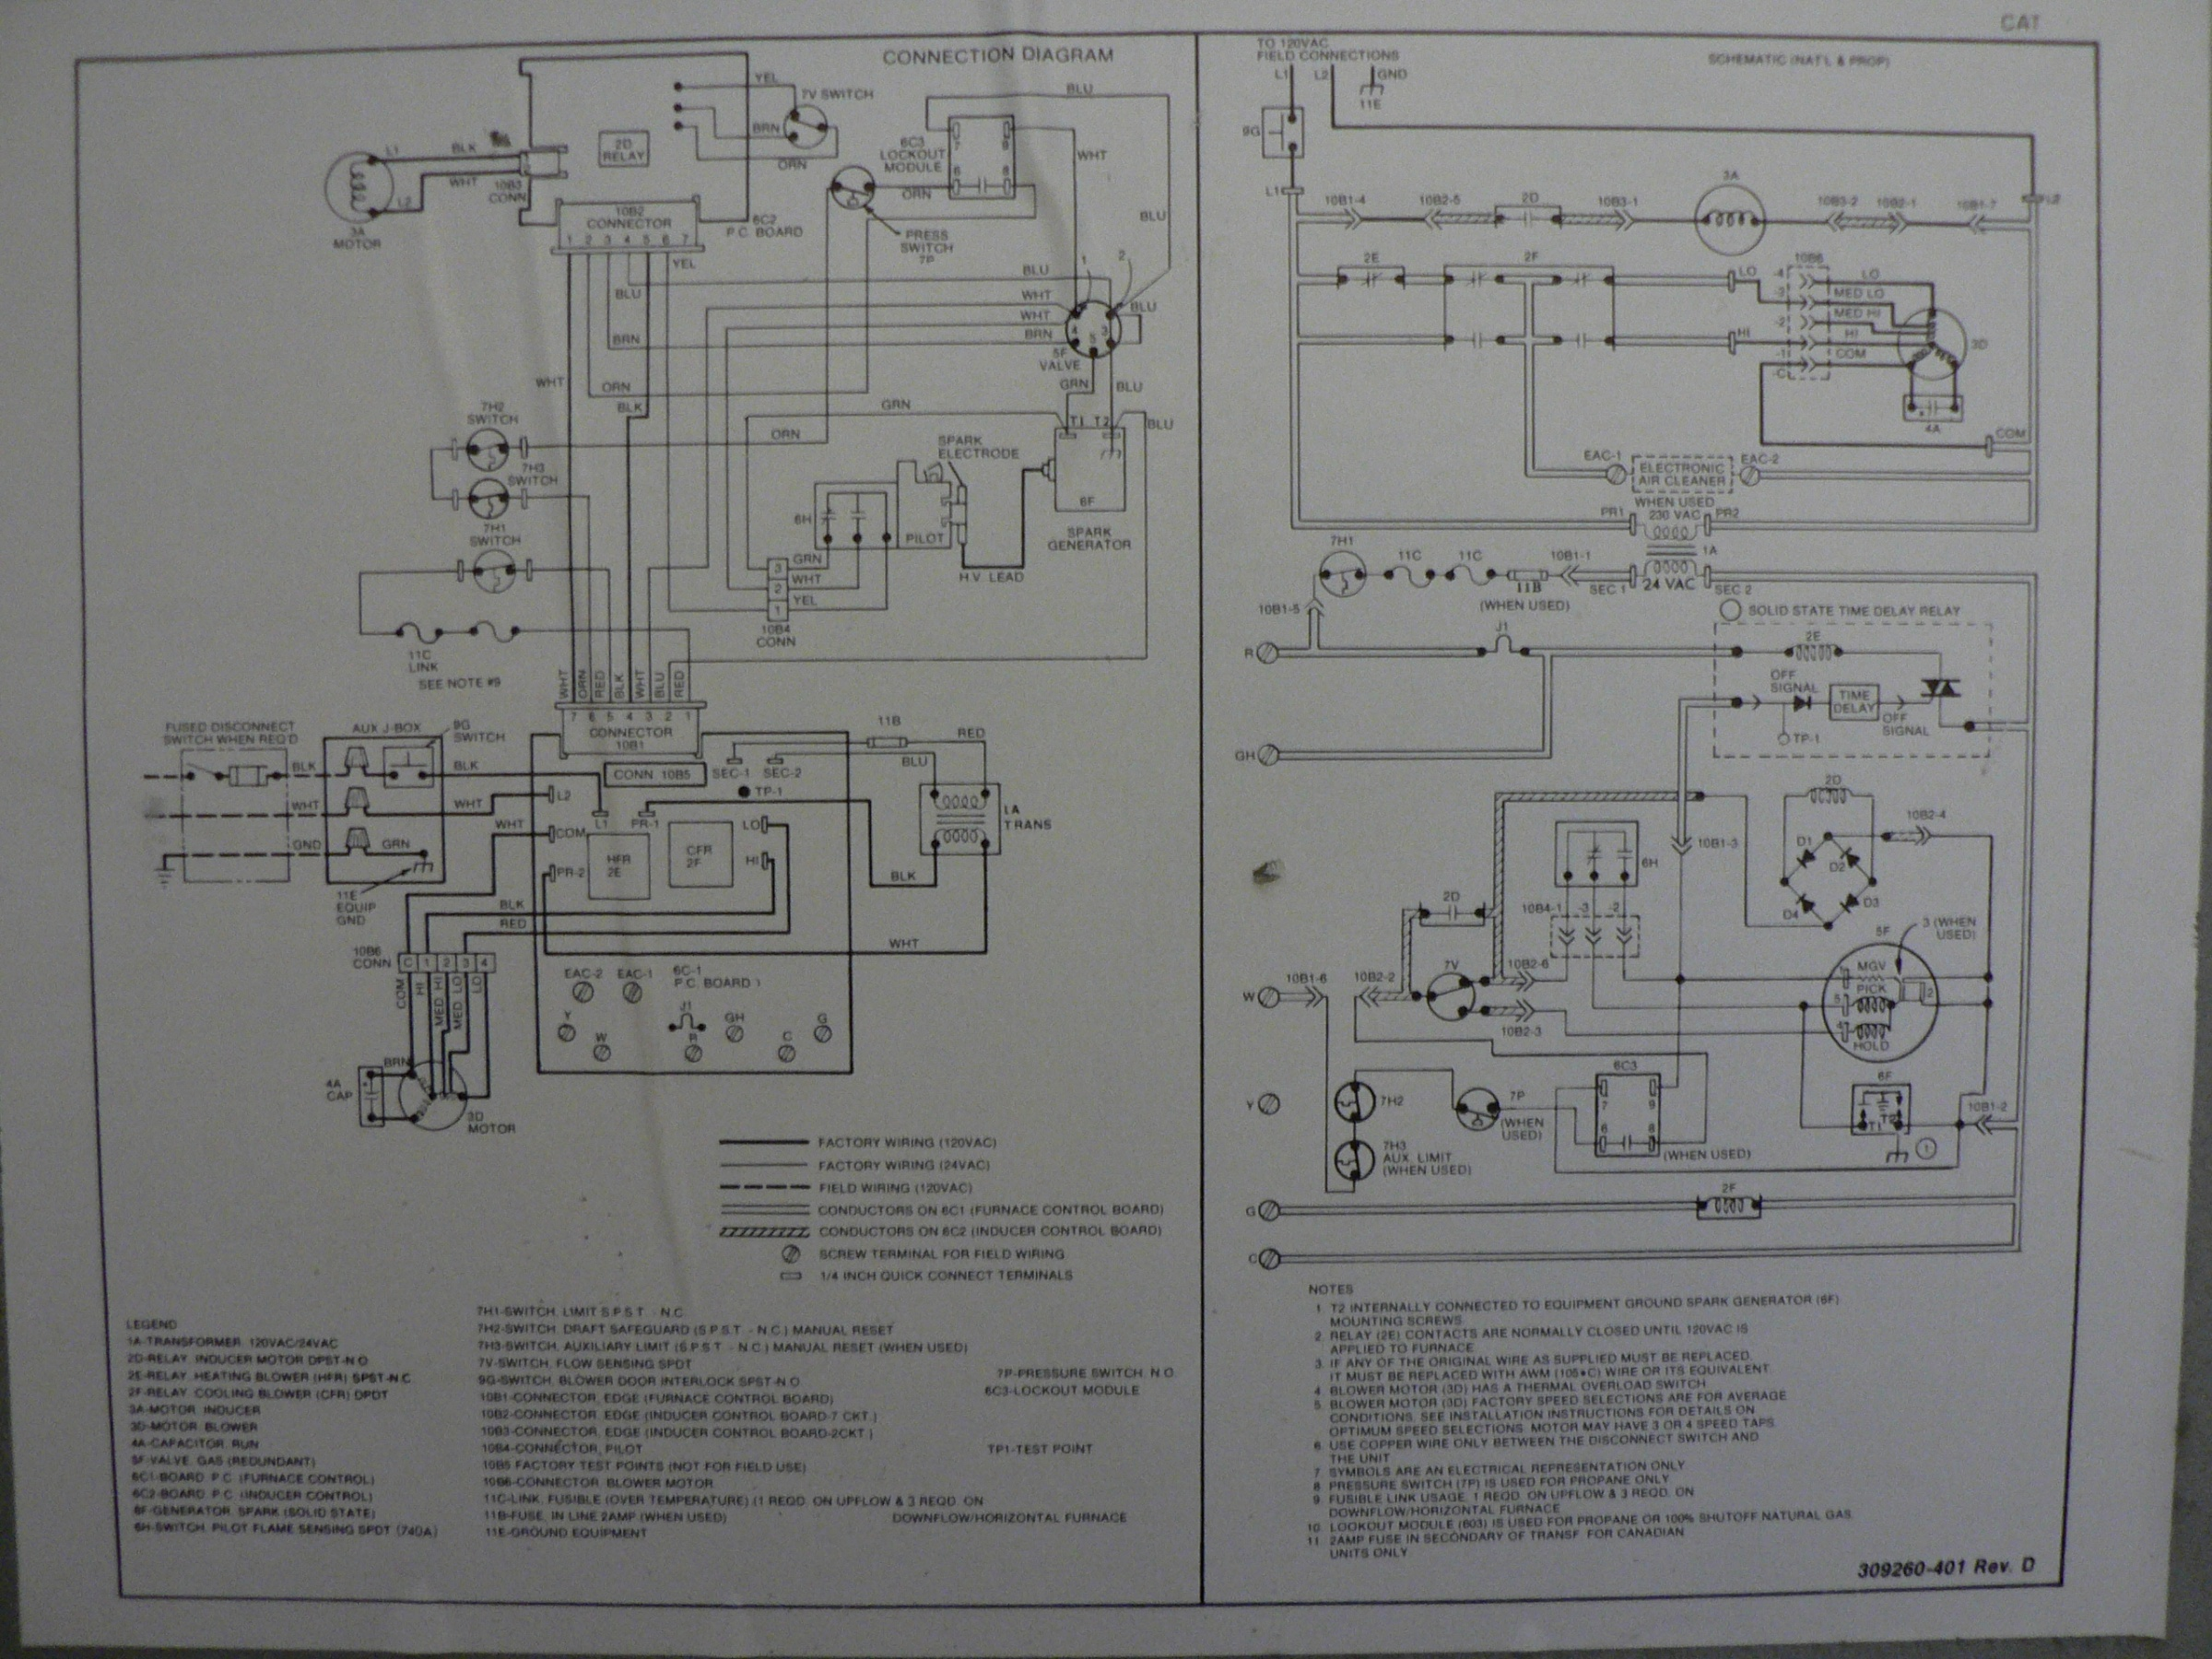 537313d1540010774 bryant carrier 395baw036095 carrier furnace schematic.327 carrier furnace schematic wiring schematics diagram